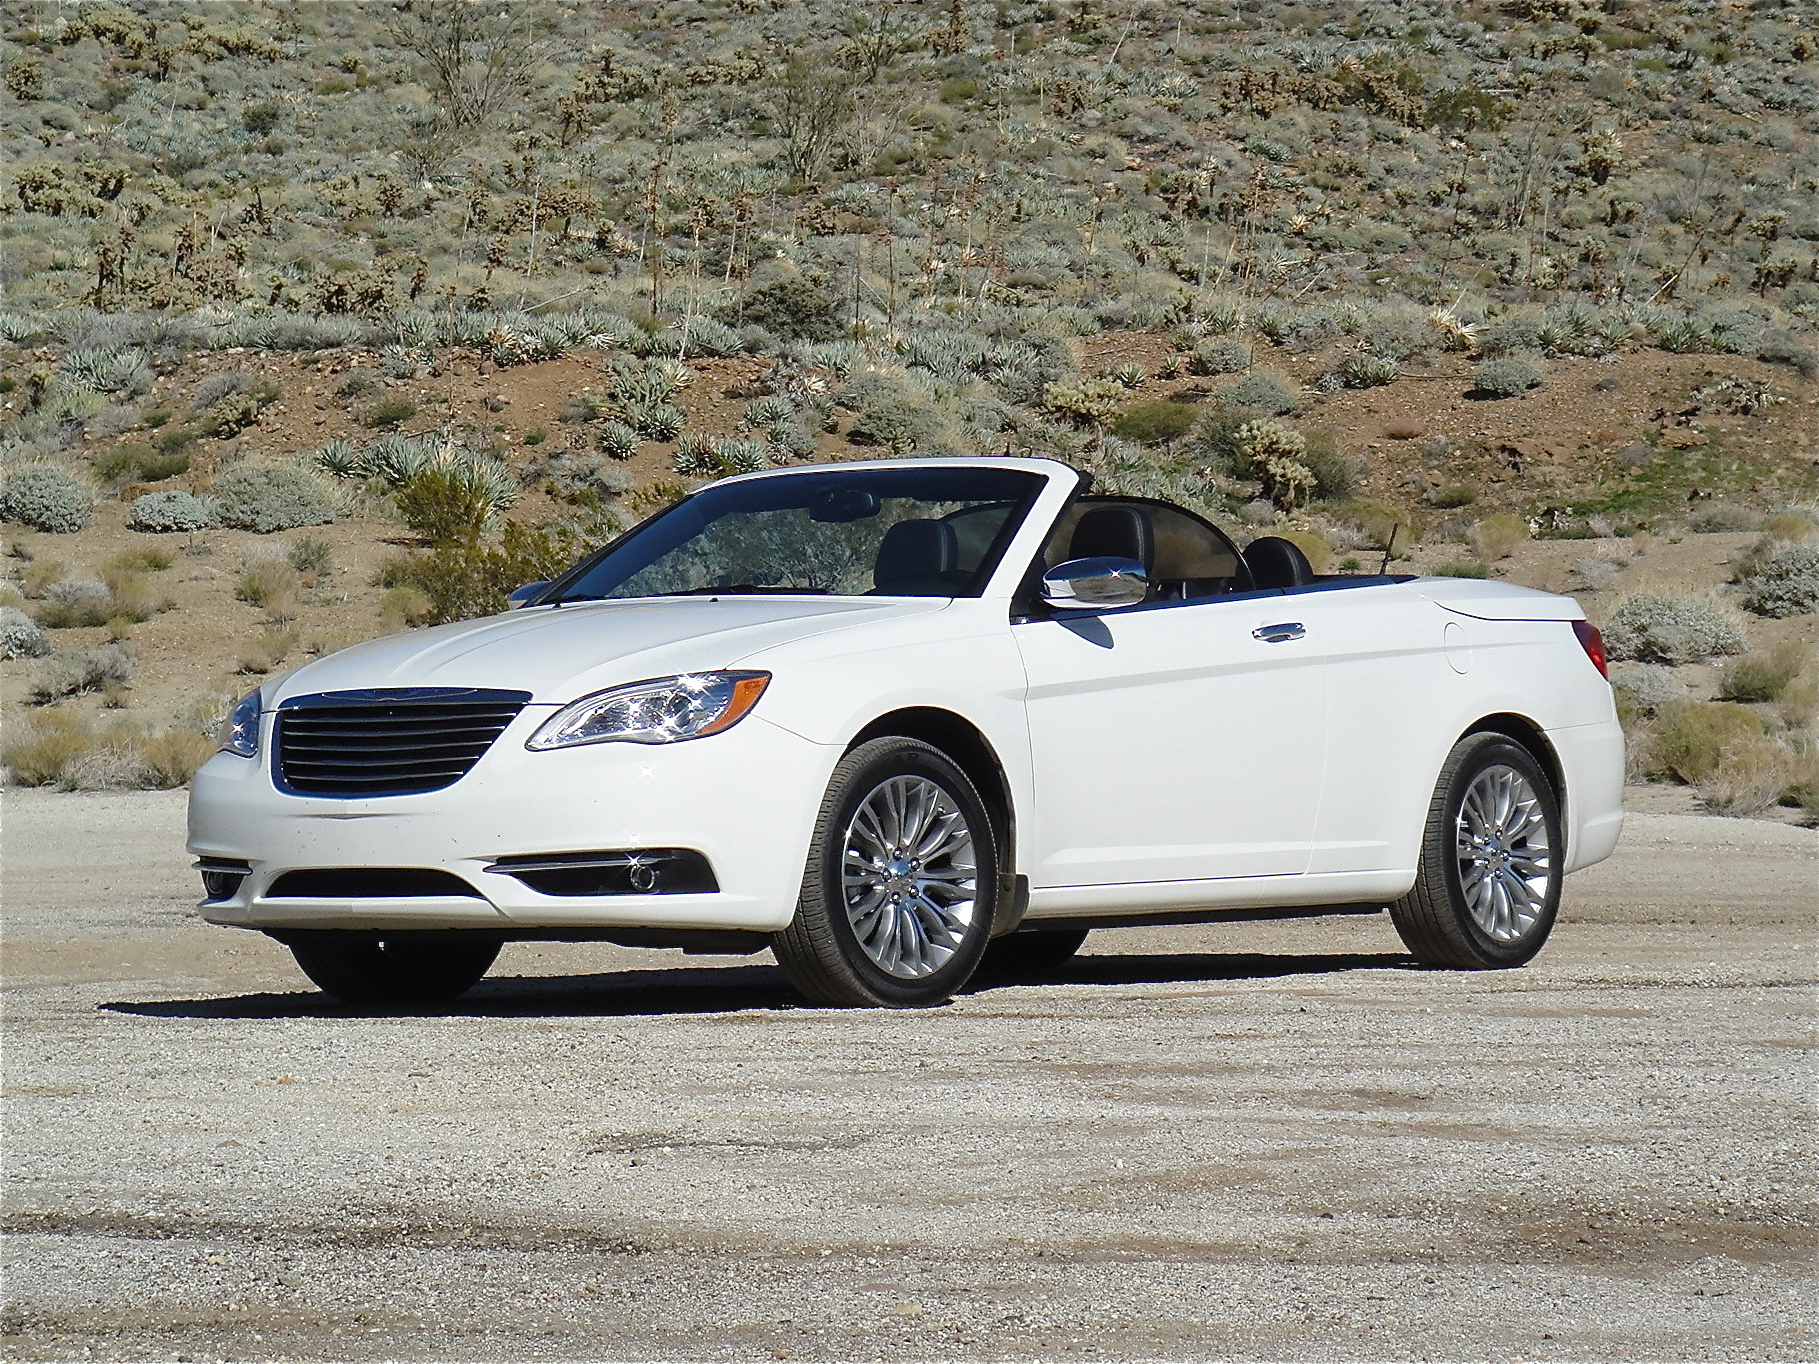 newport convertible chrysler motors luxury fusion vehicles hardtop